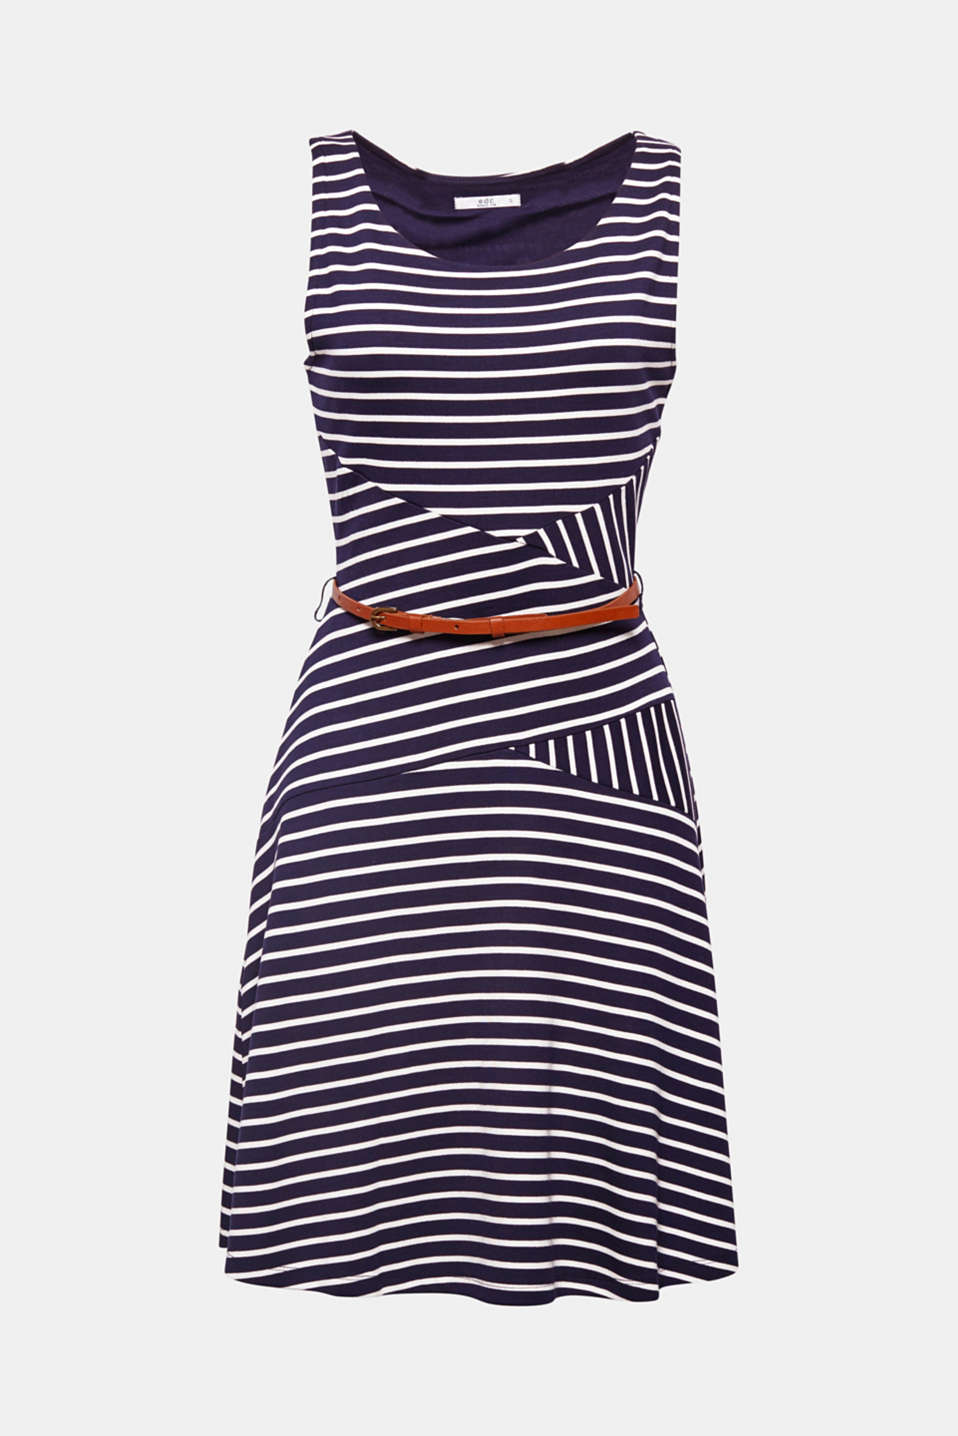 Summer styles can be so beautiful: This softly draped jersey dress with an accentuating belt is flirty and feminine.